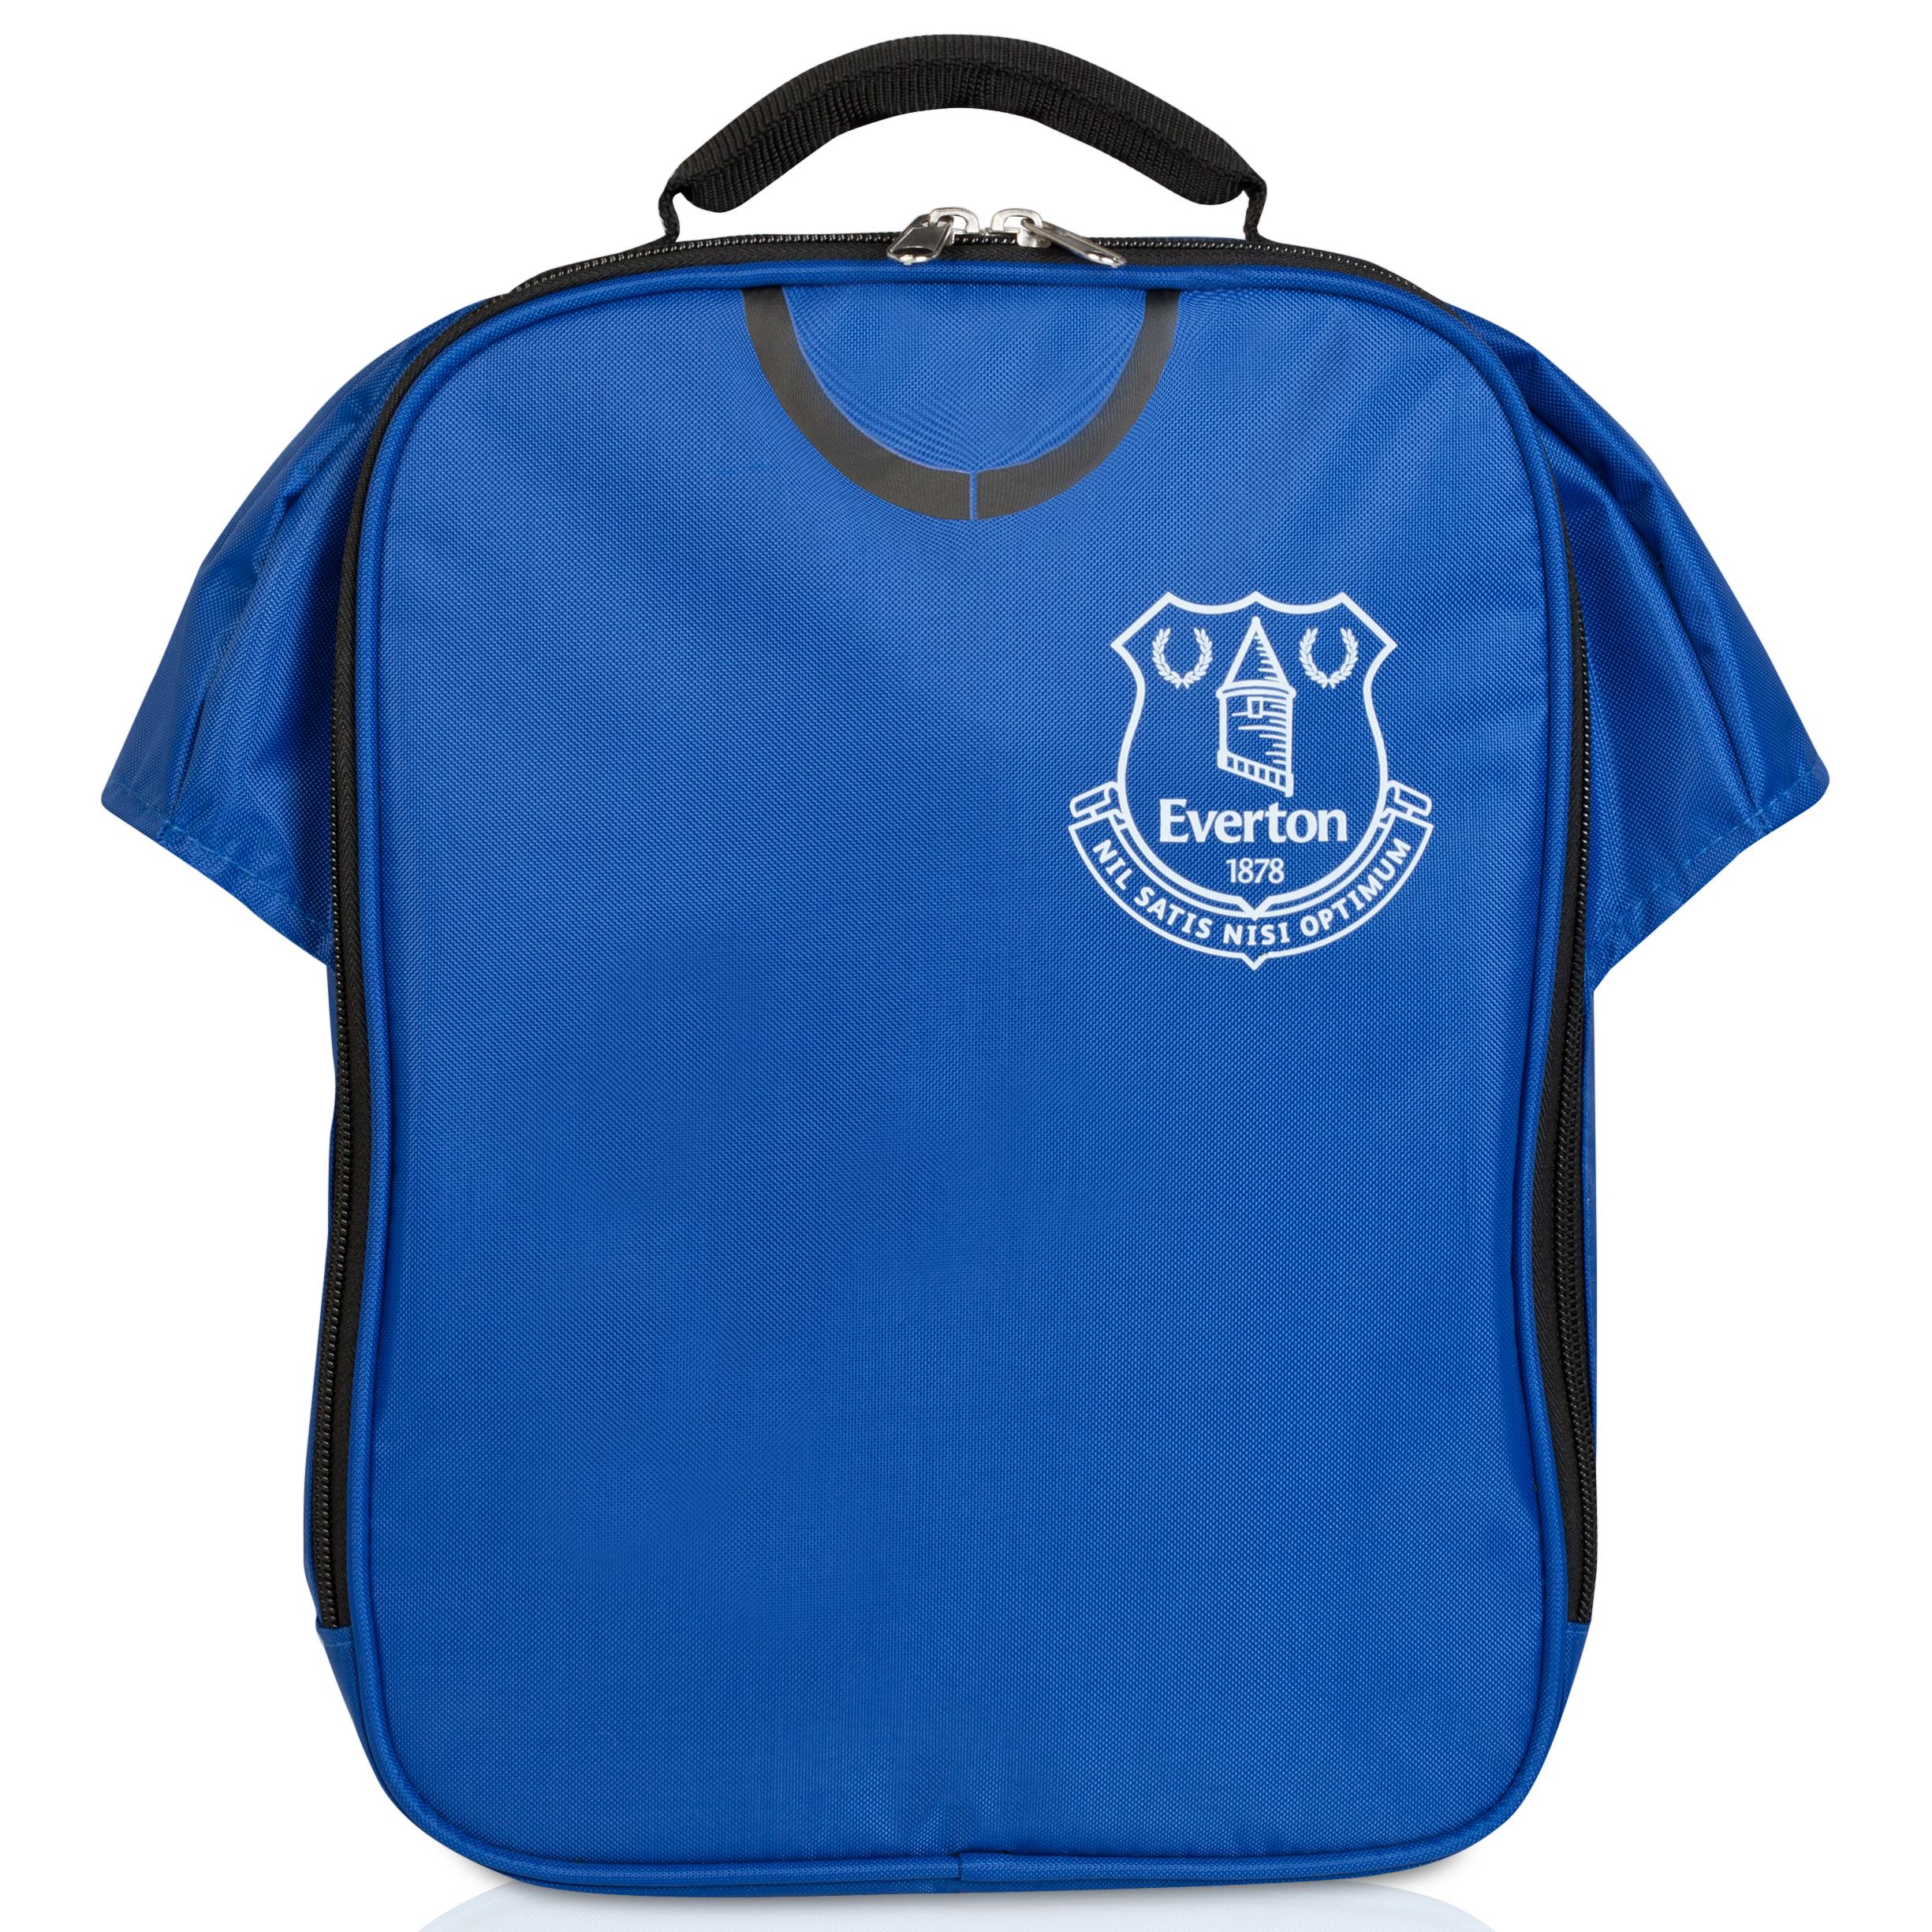 Everton Shirt Lunchbag